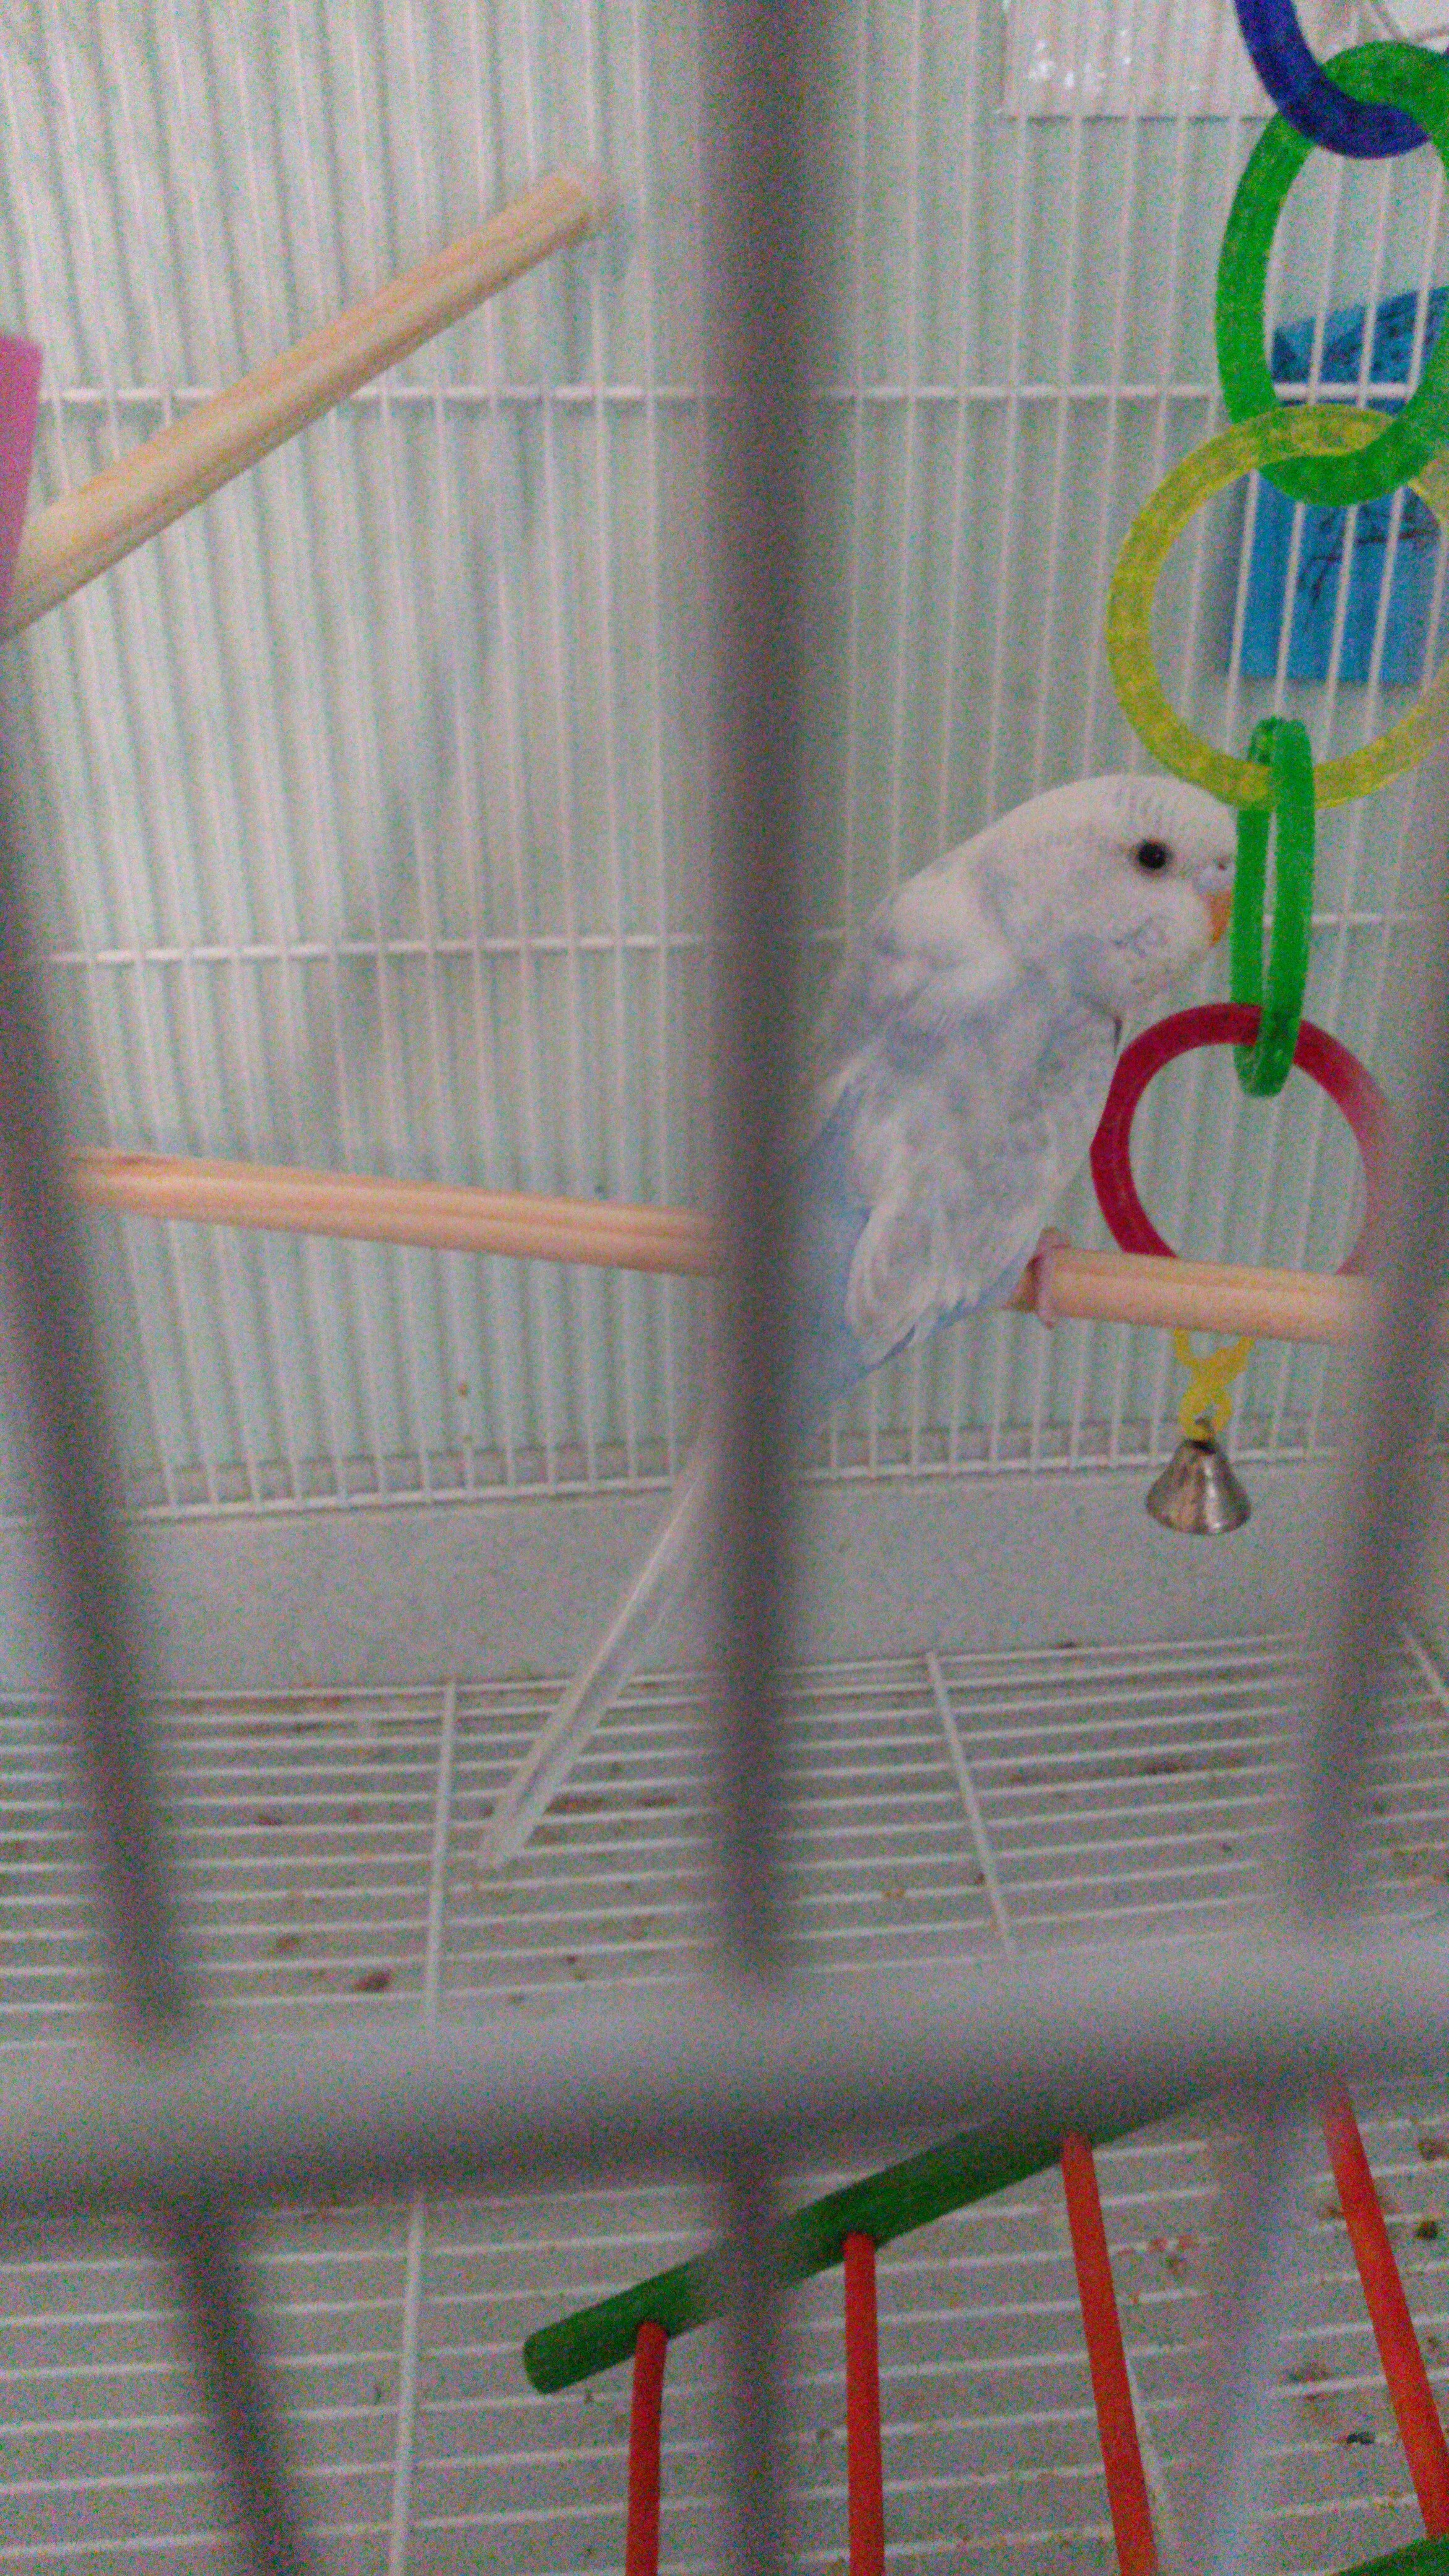 Budgie Colour Types | Varieties and Types | Budgie Guide | Guide